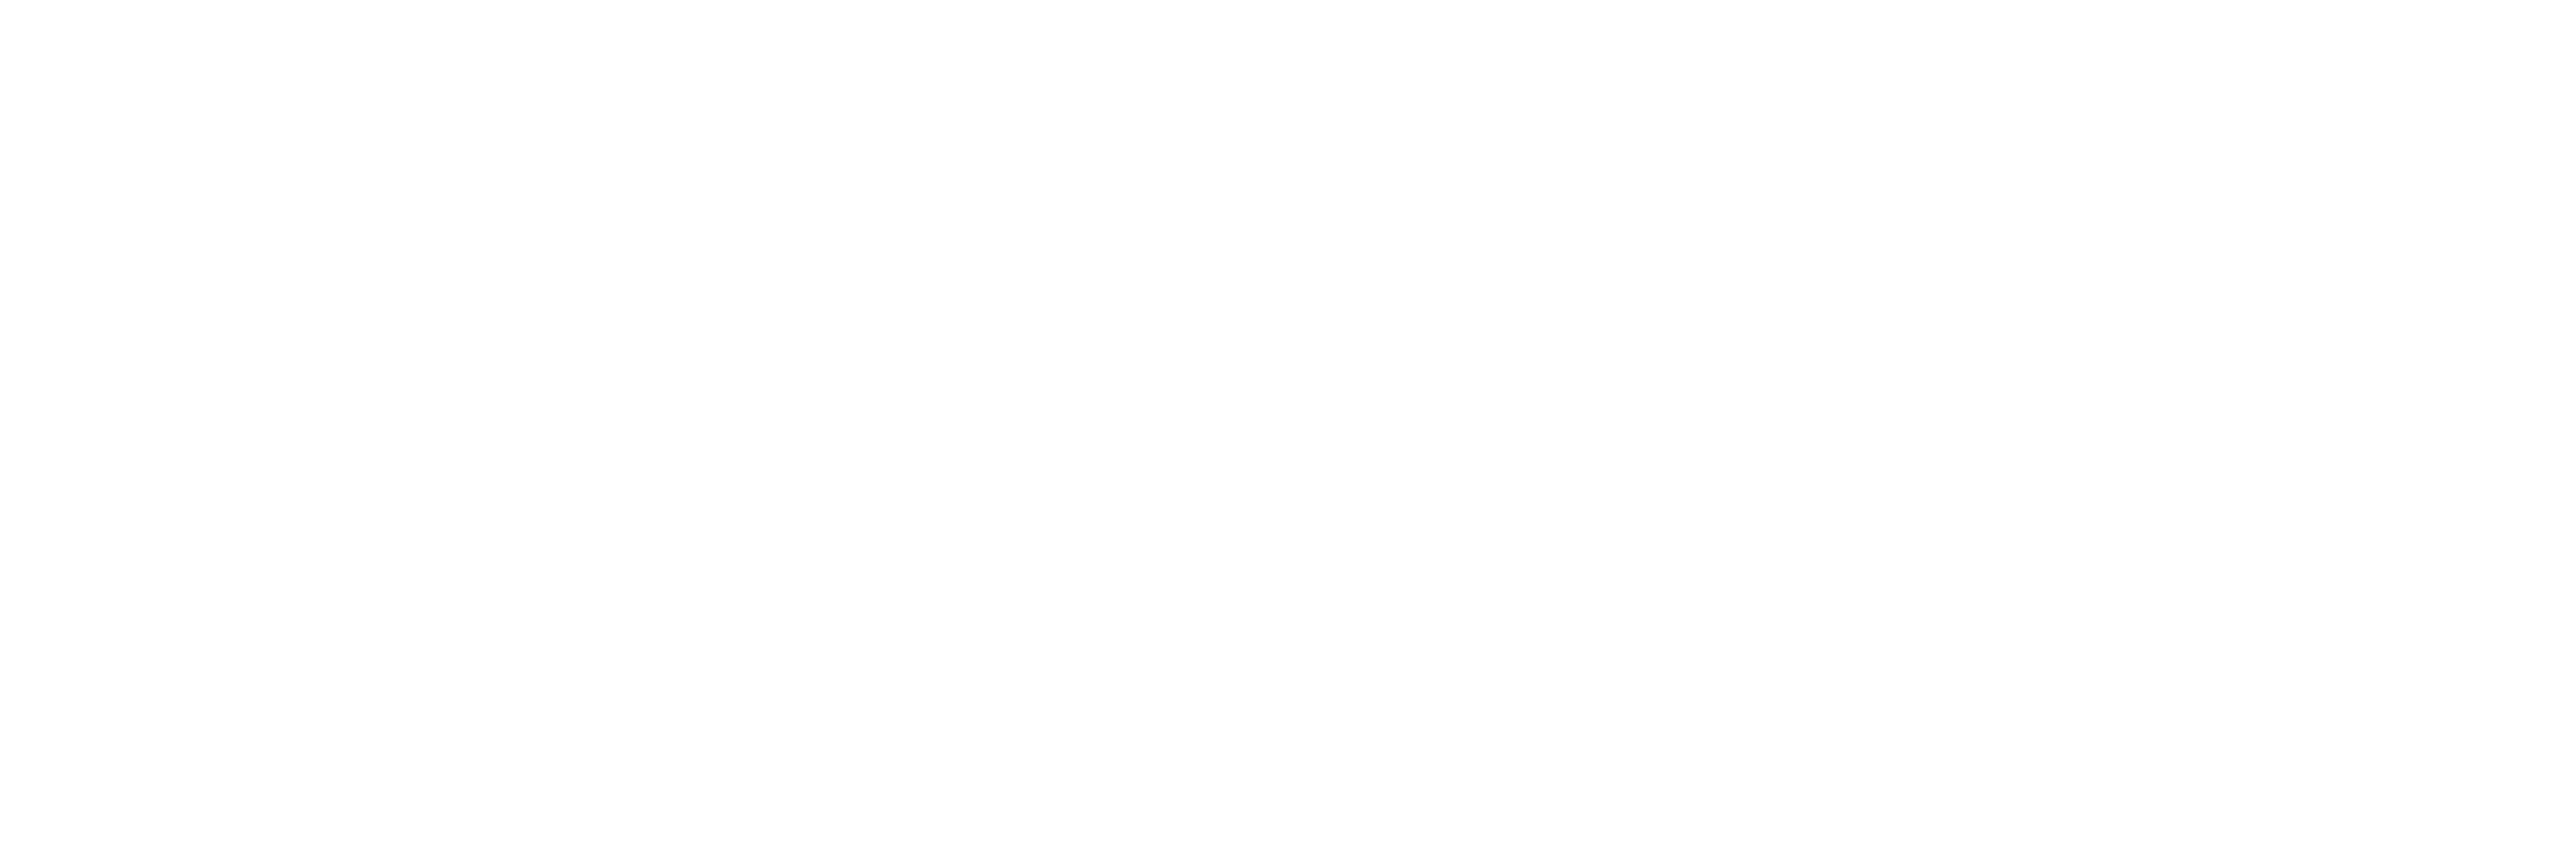 Snowy Laundry & Dry-Cleaning